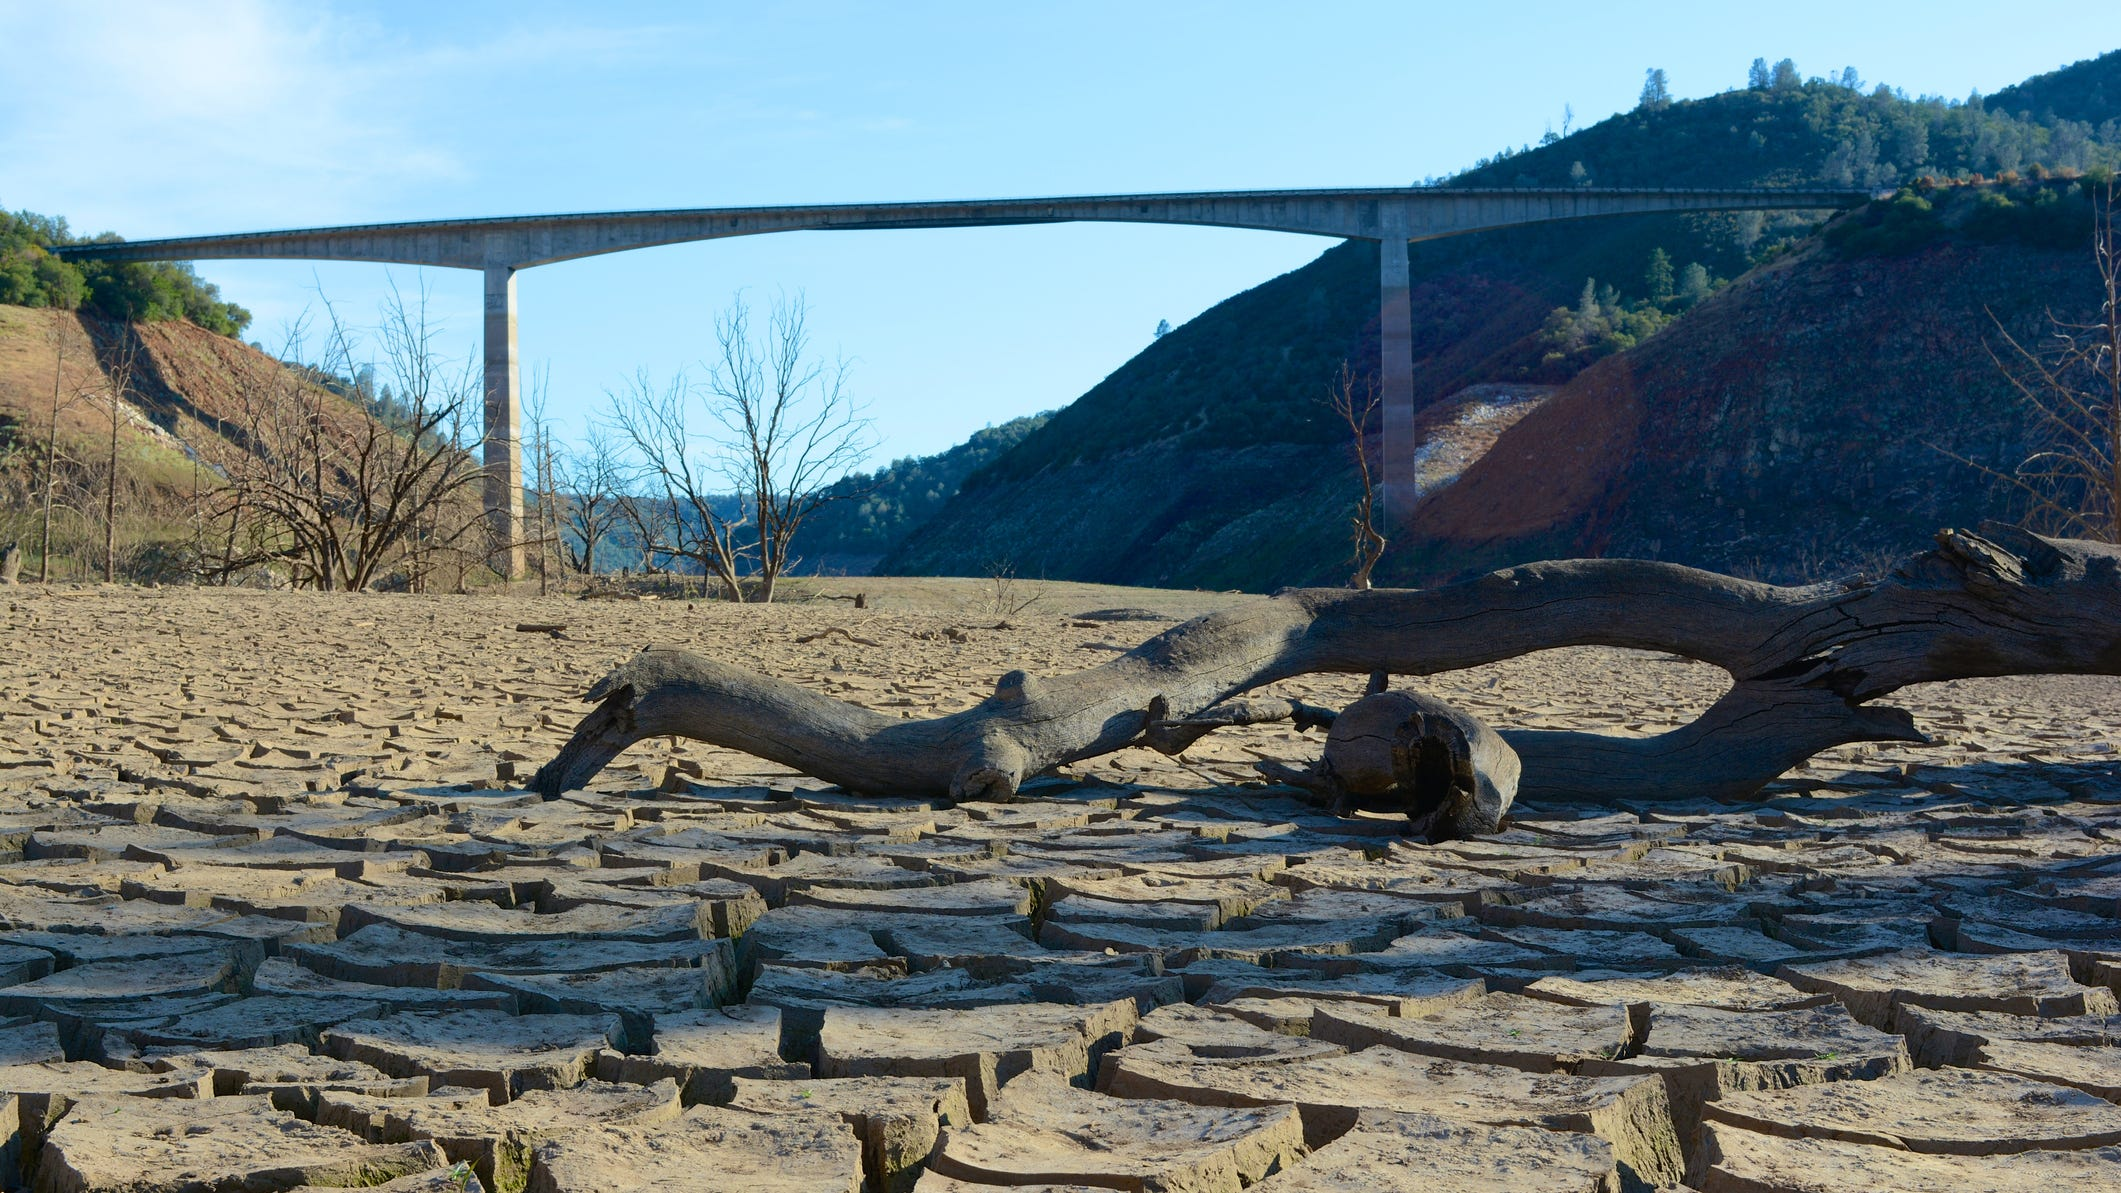 Drought making California's drinking water dirtier